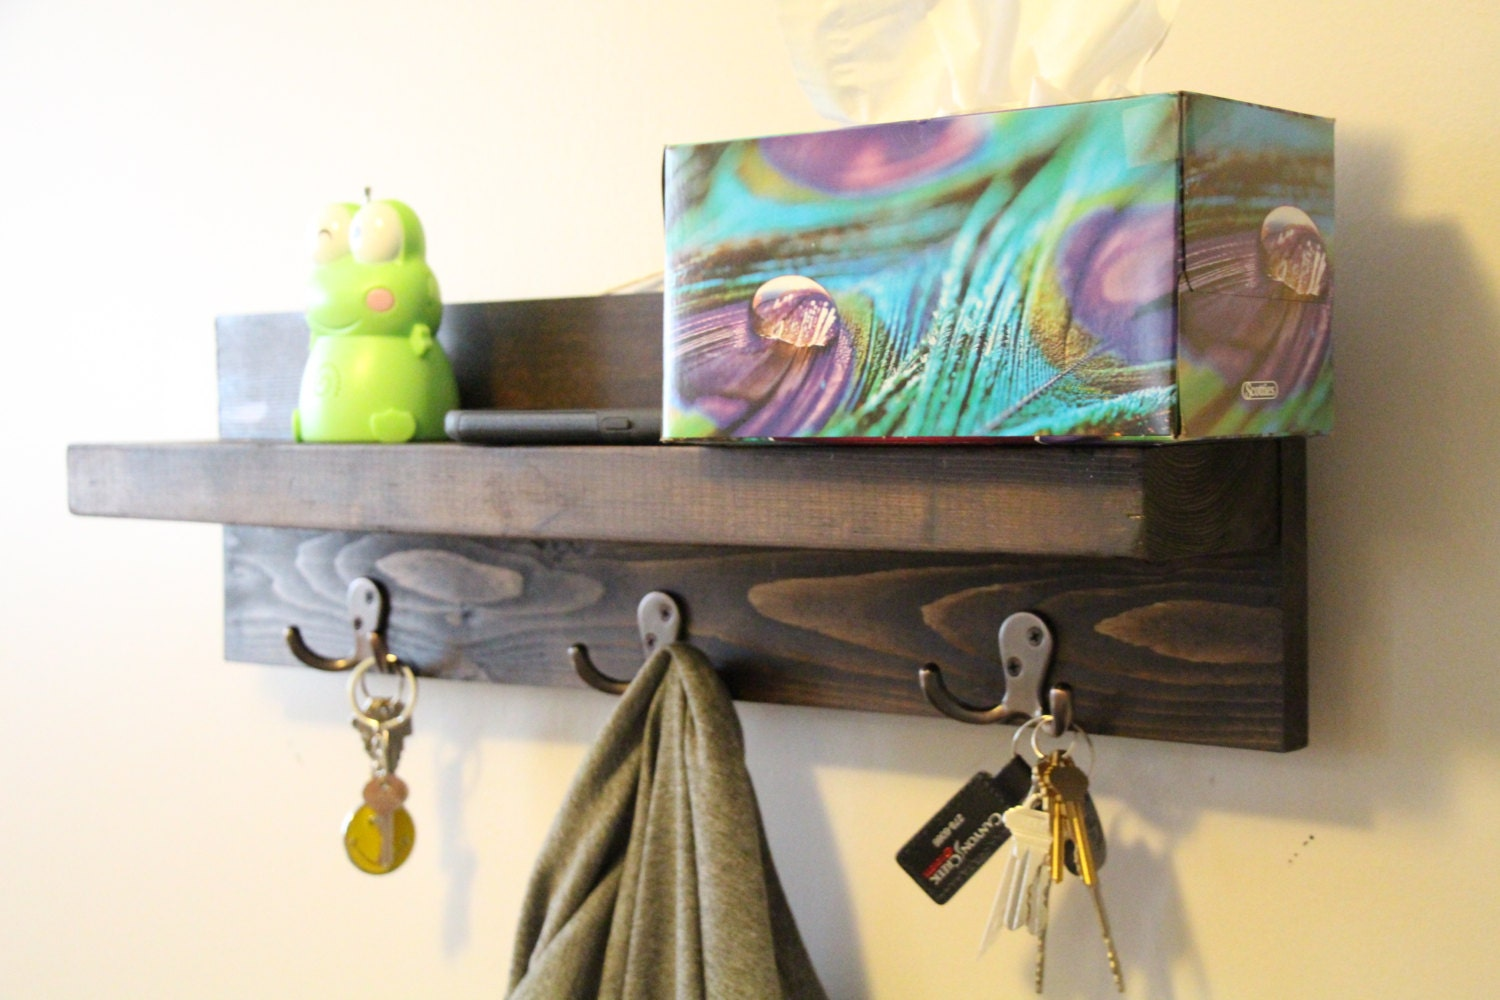 Key holder for wall key holder shelf key organizer wall for Mural key holder